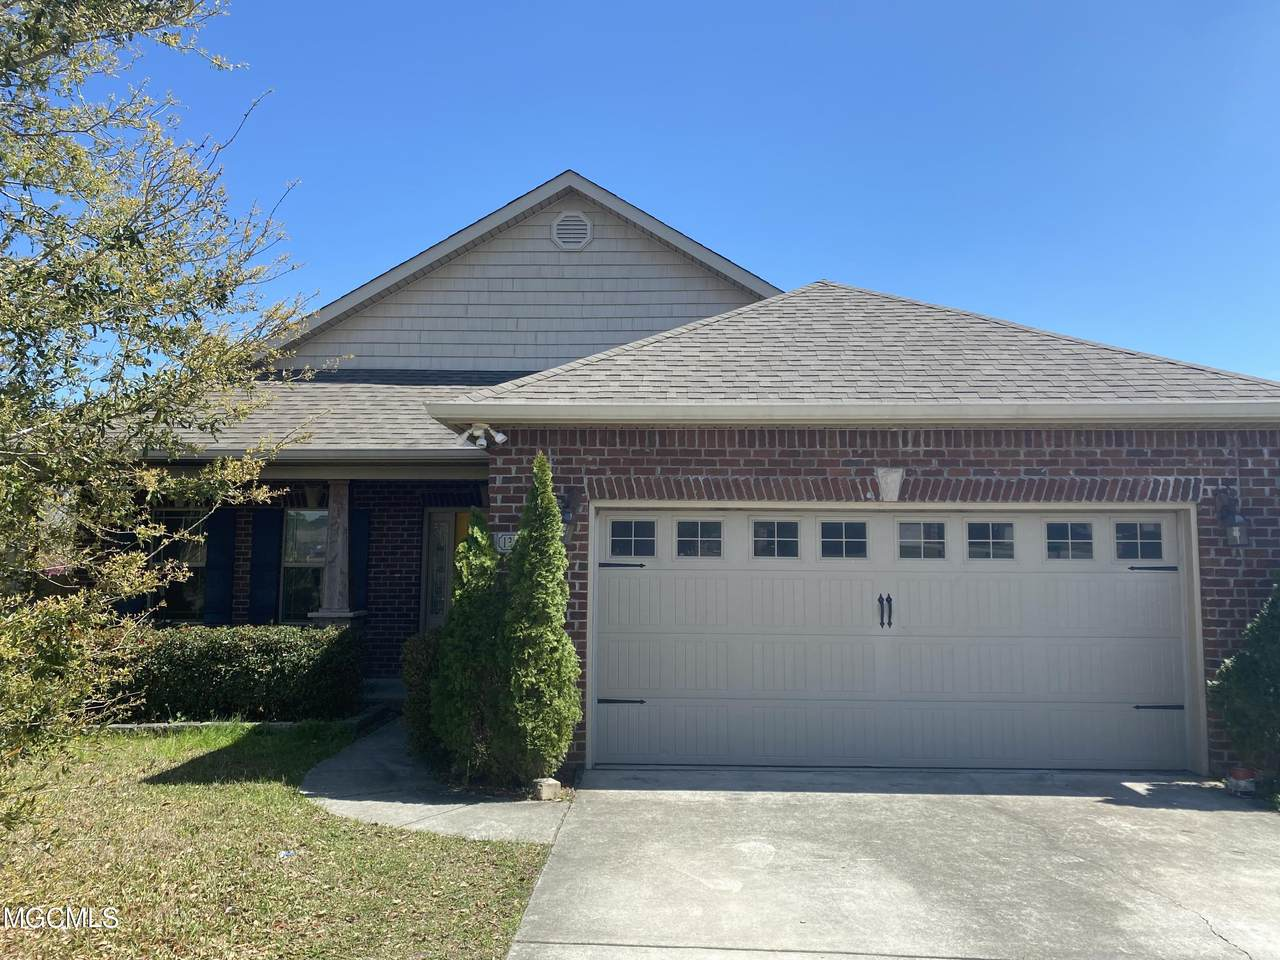 13745 Windwood Dr - Photo 1